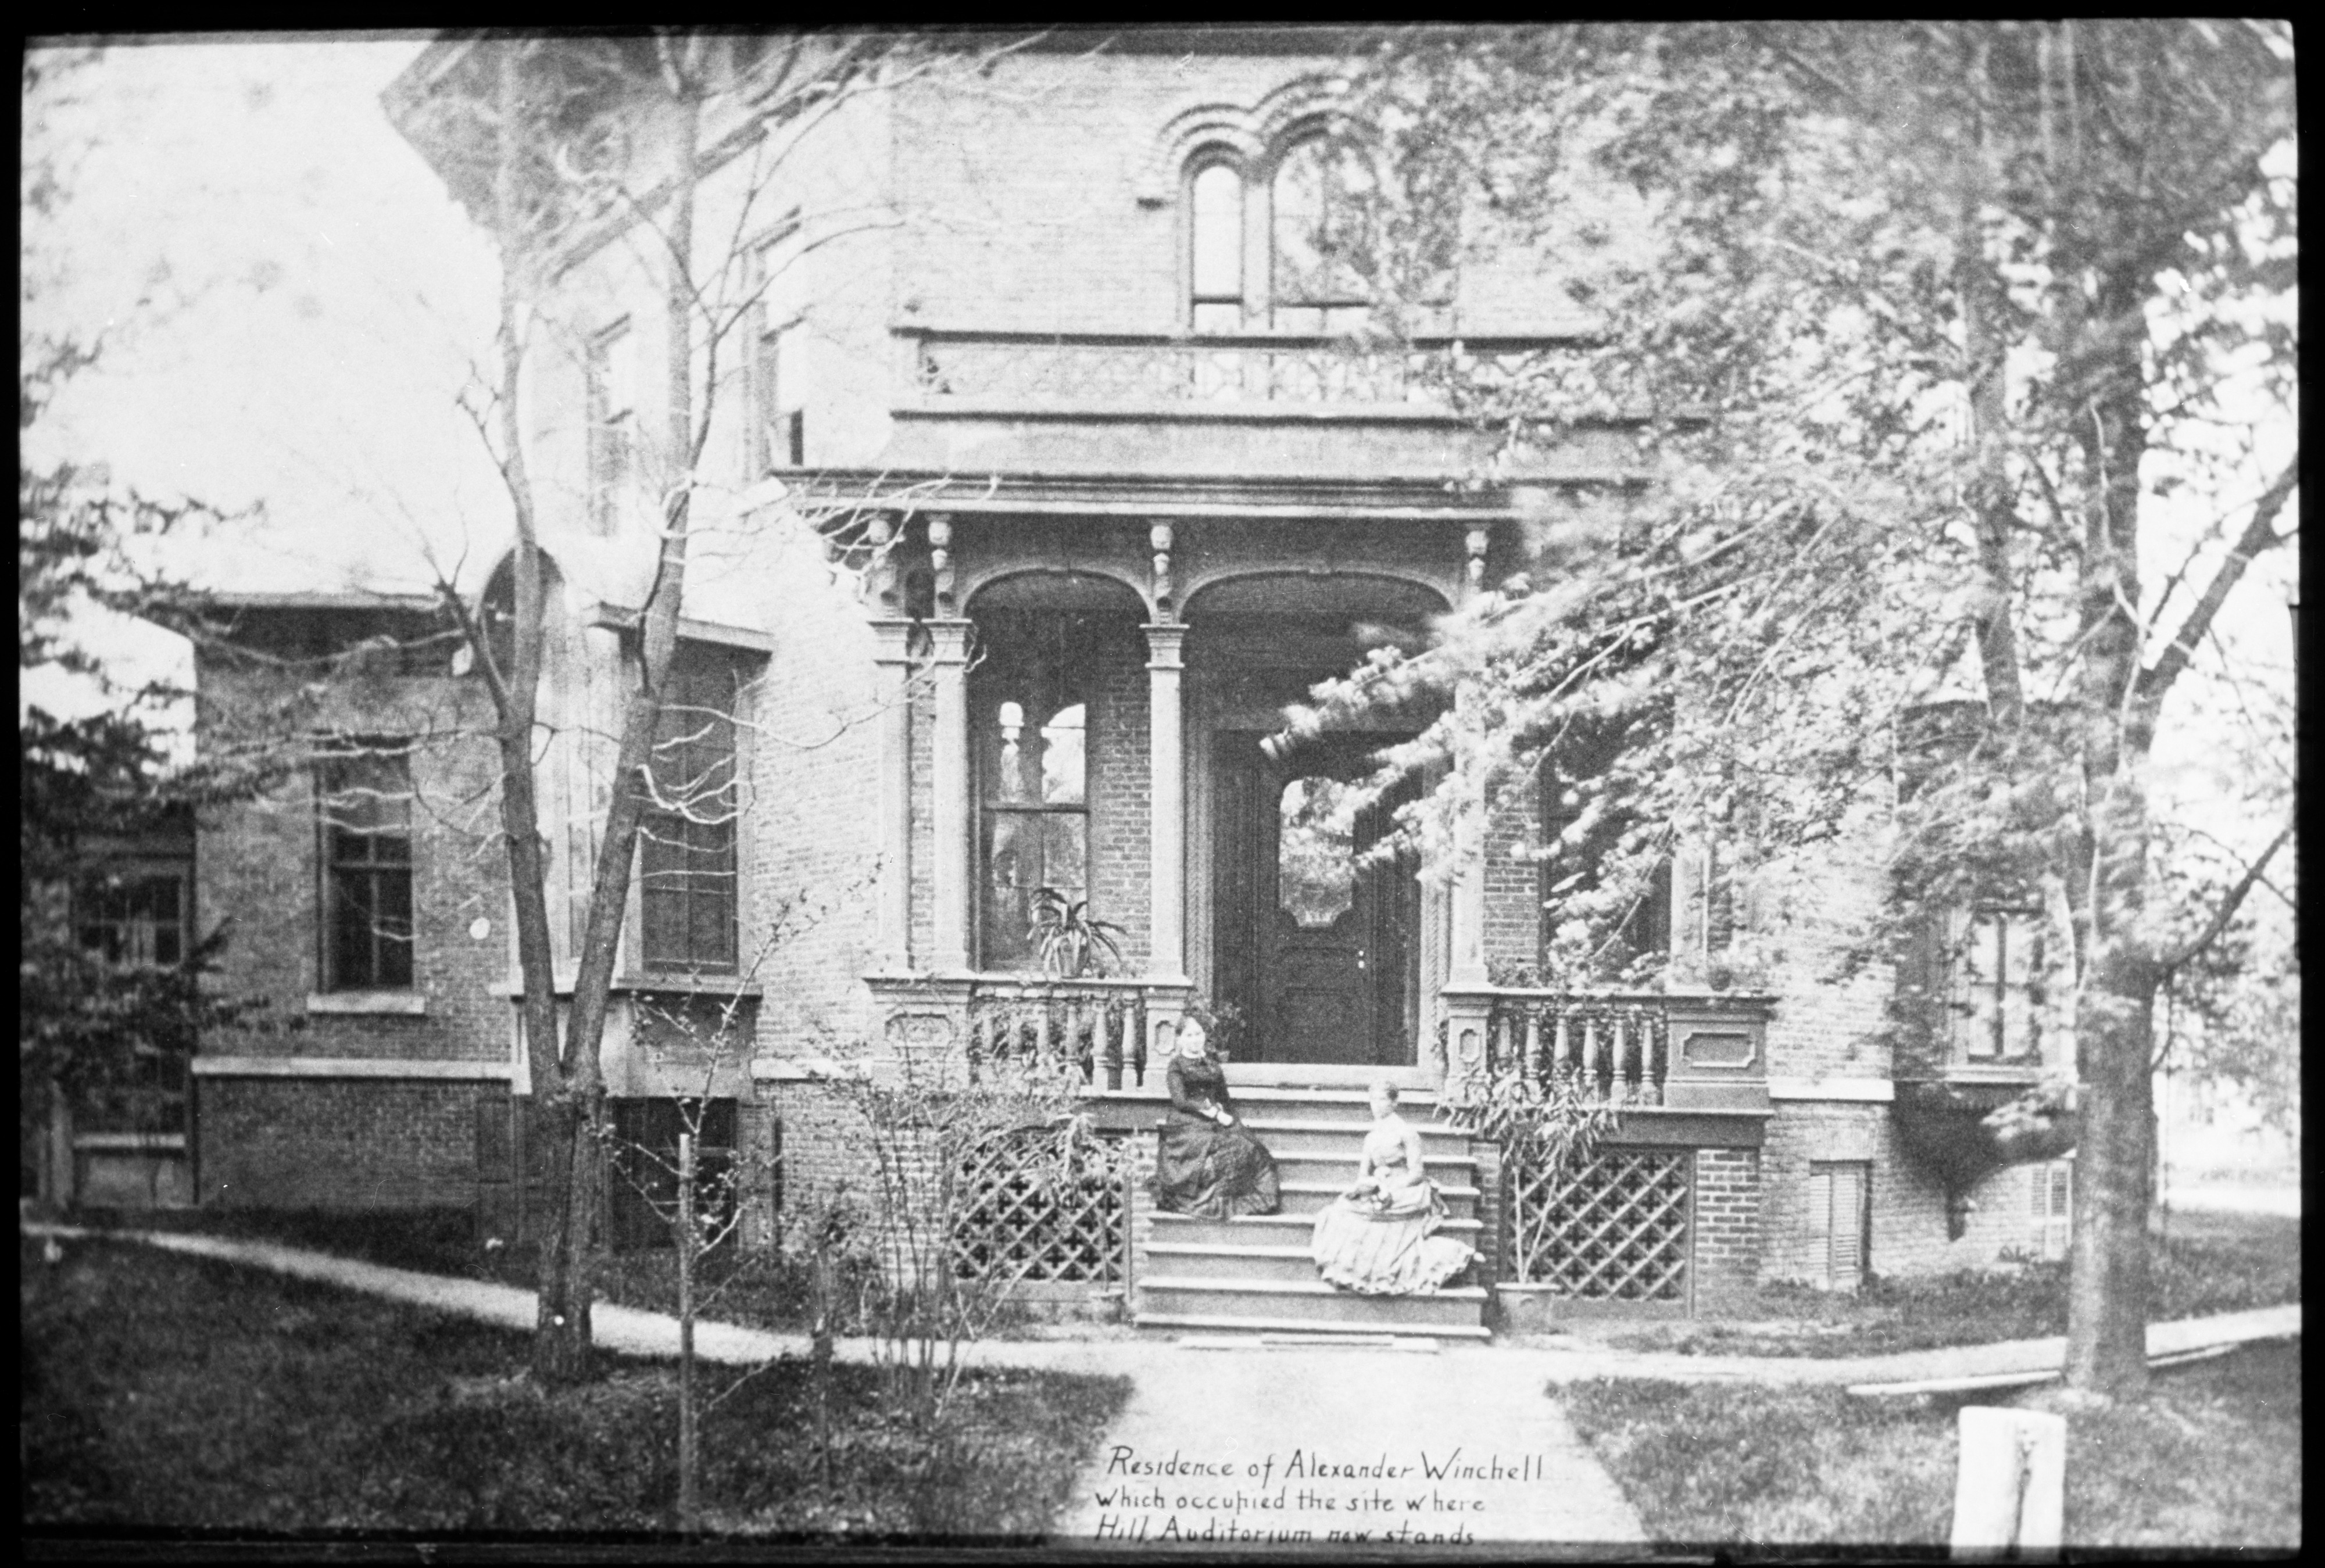 Residence of Alexander Winchell, which occupied site where Hill Auditorium is now, undated image